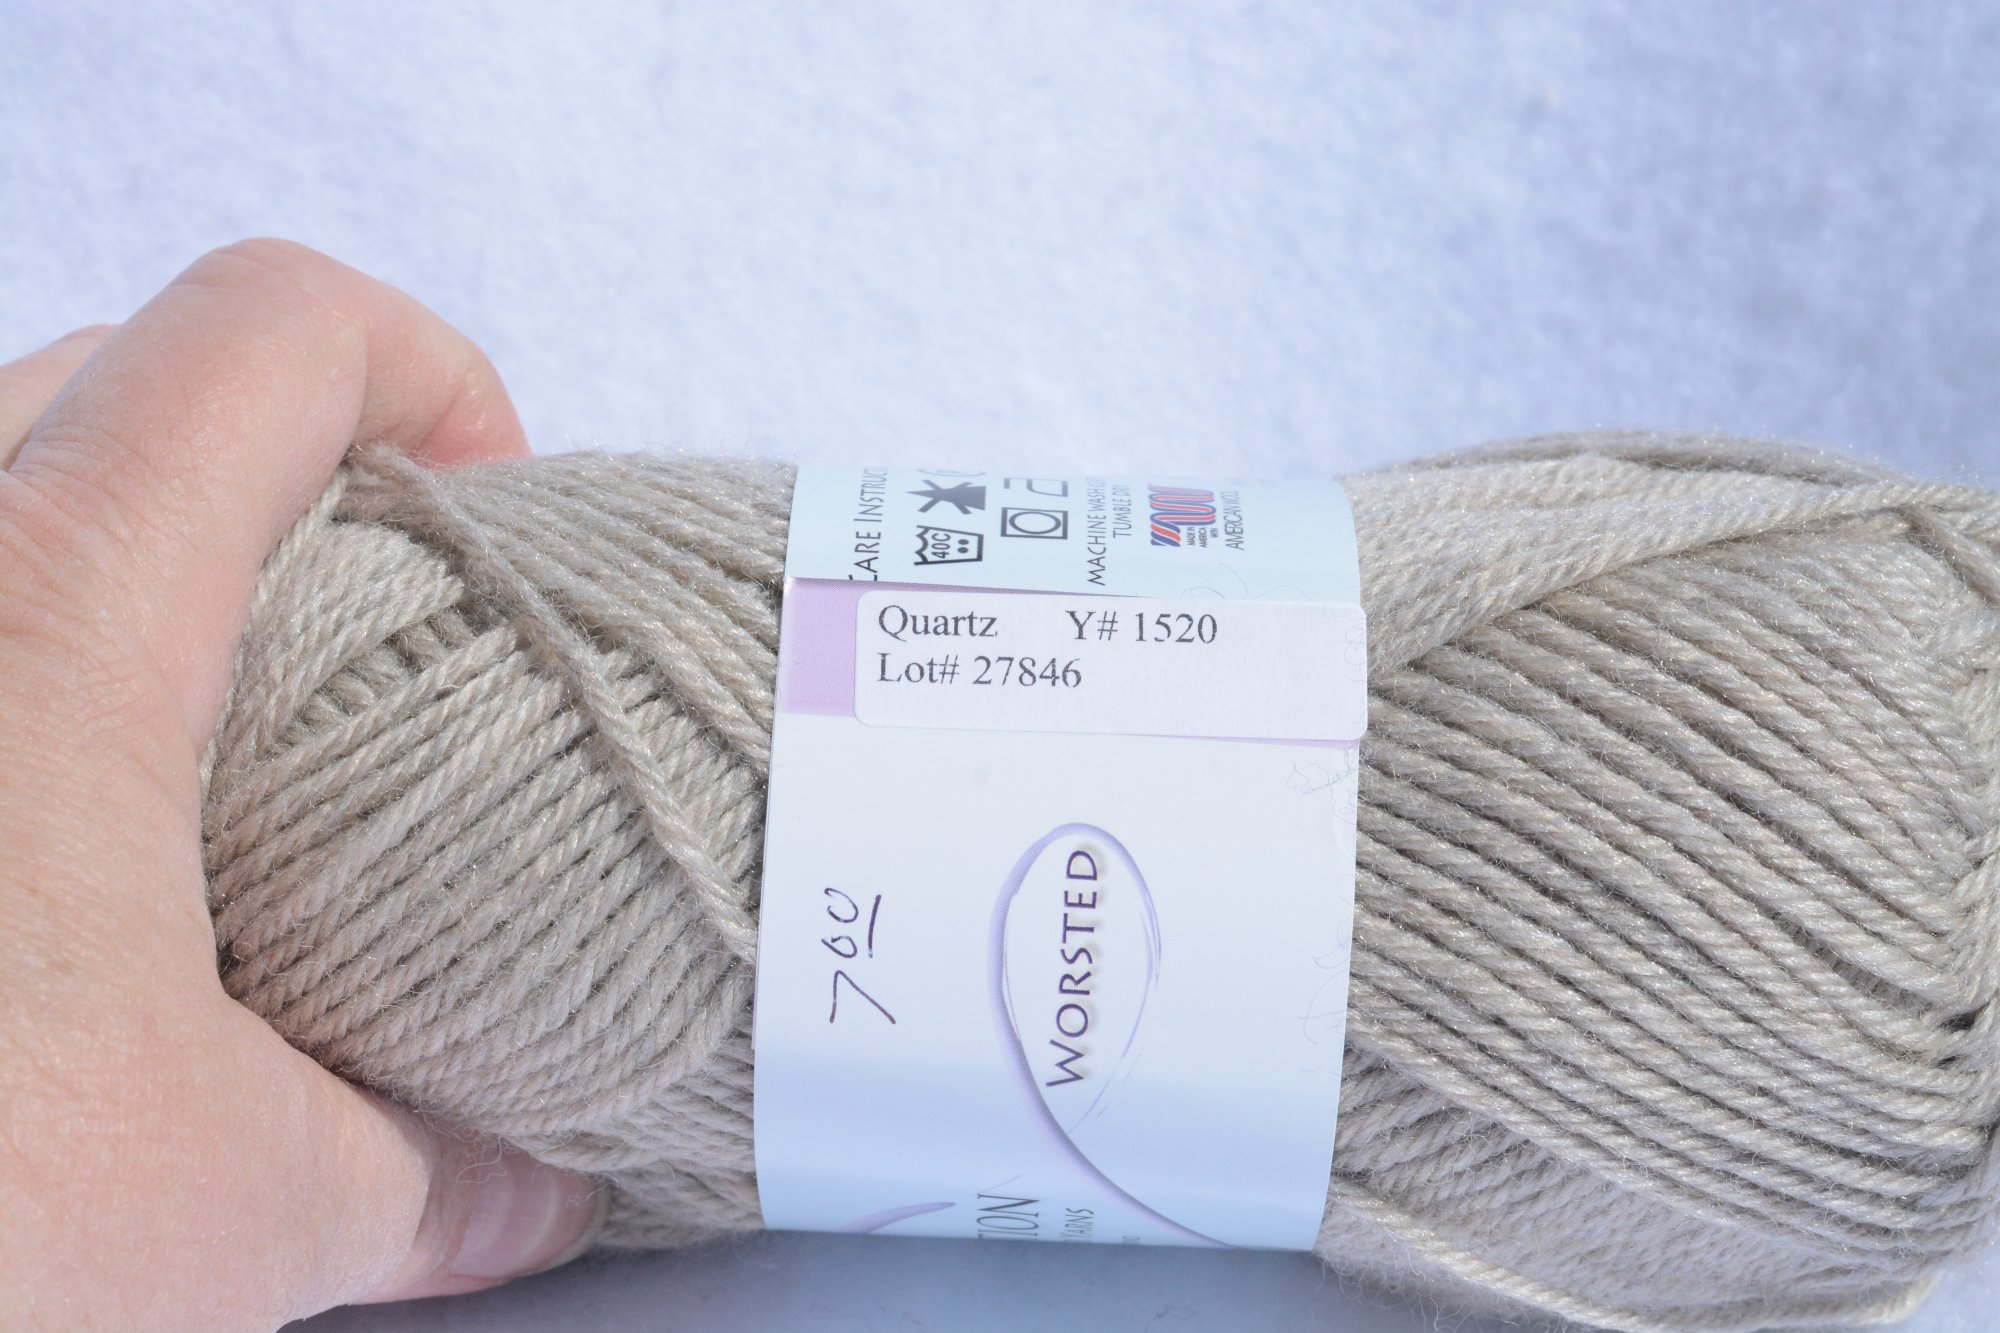 Perfection By Kraemer Yarns - Y1520 - Quartz